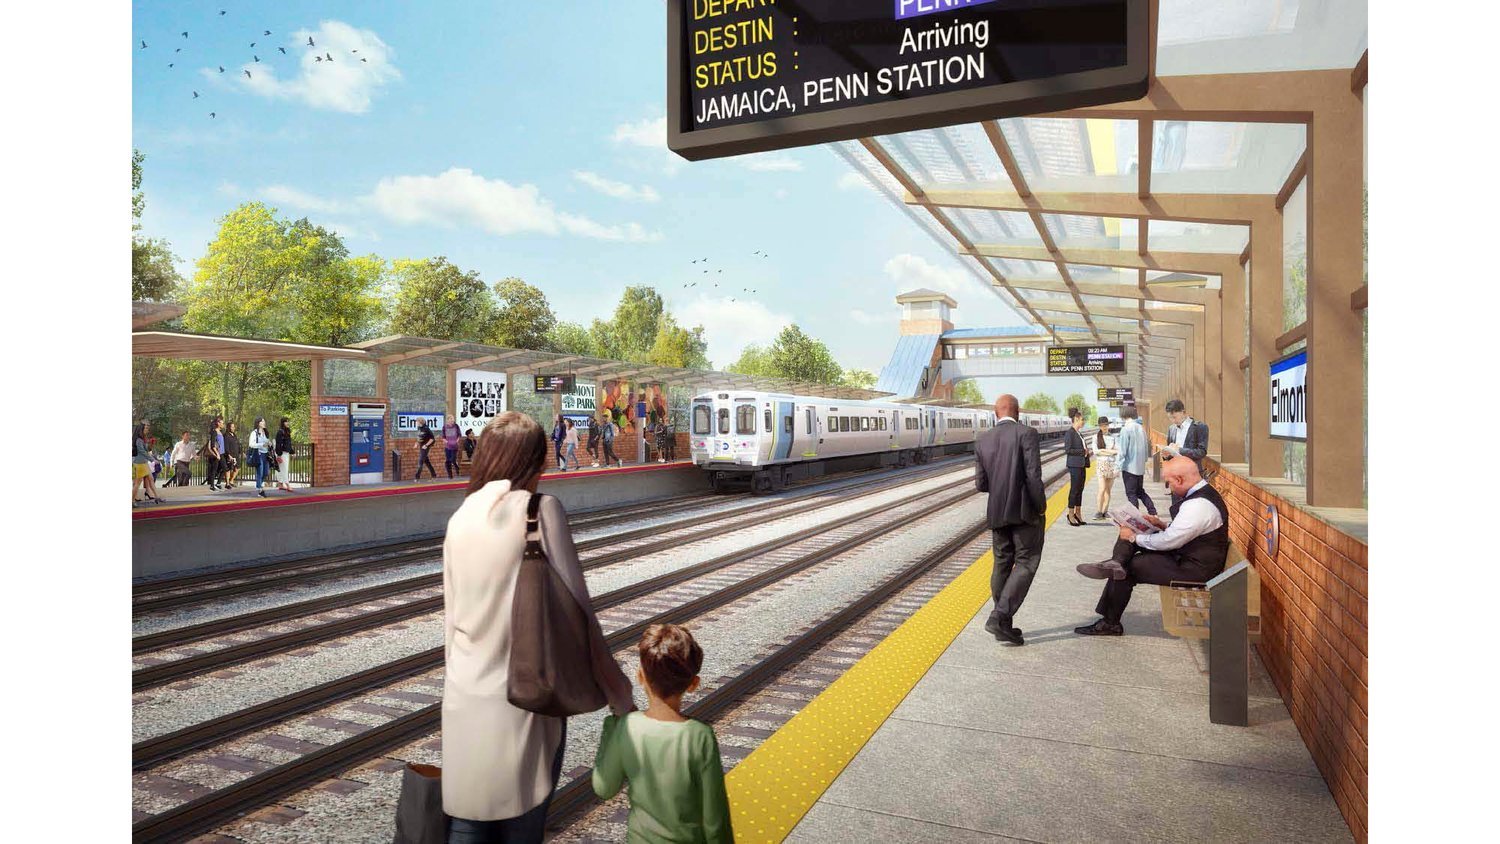 The planned Elmont Long Island Rail Road station is expected to open eastbound service in 2021 and westbound service in 2022.